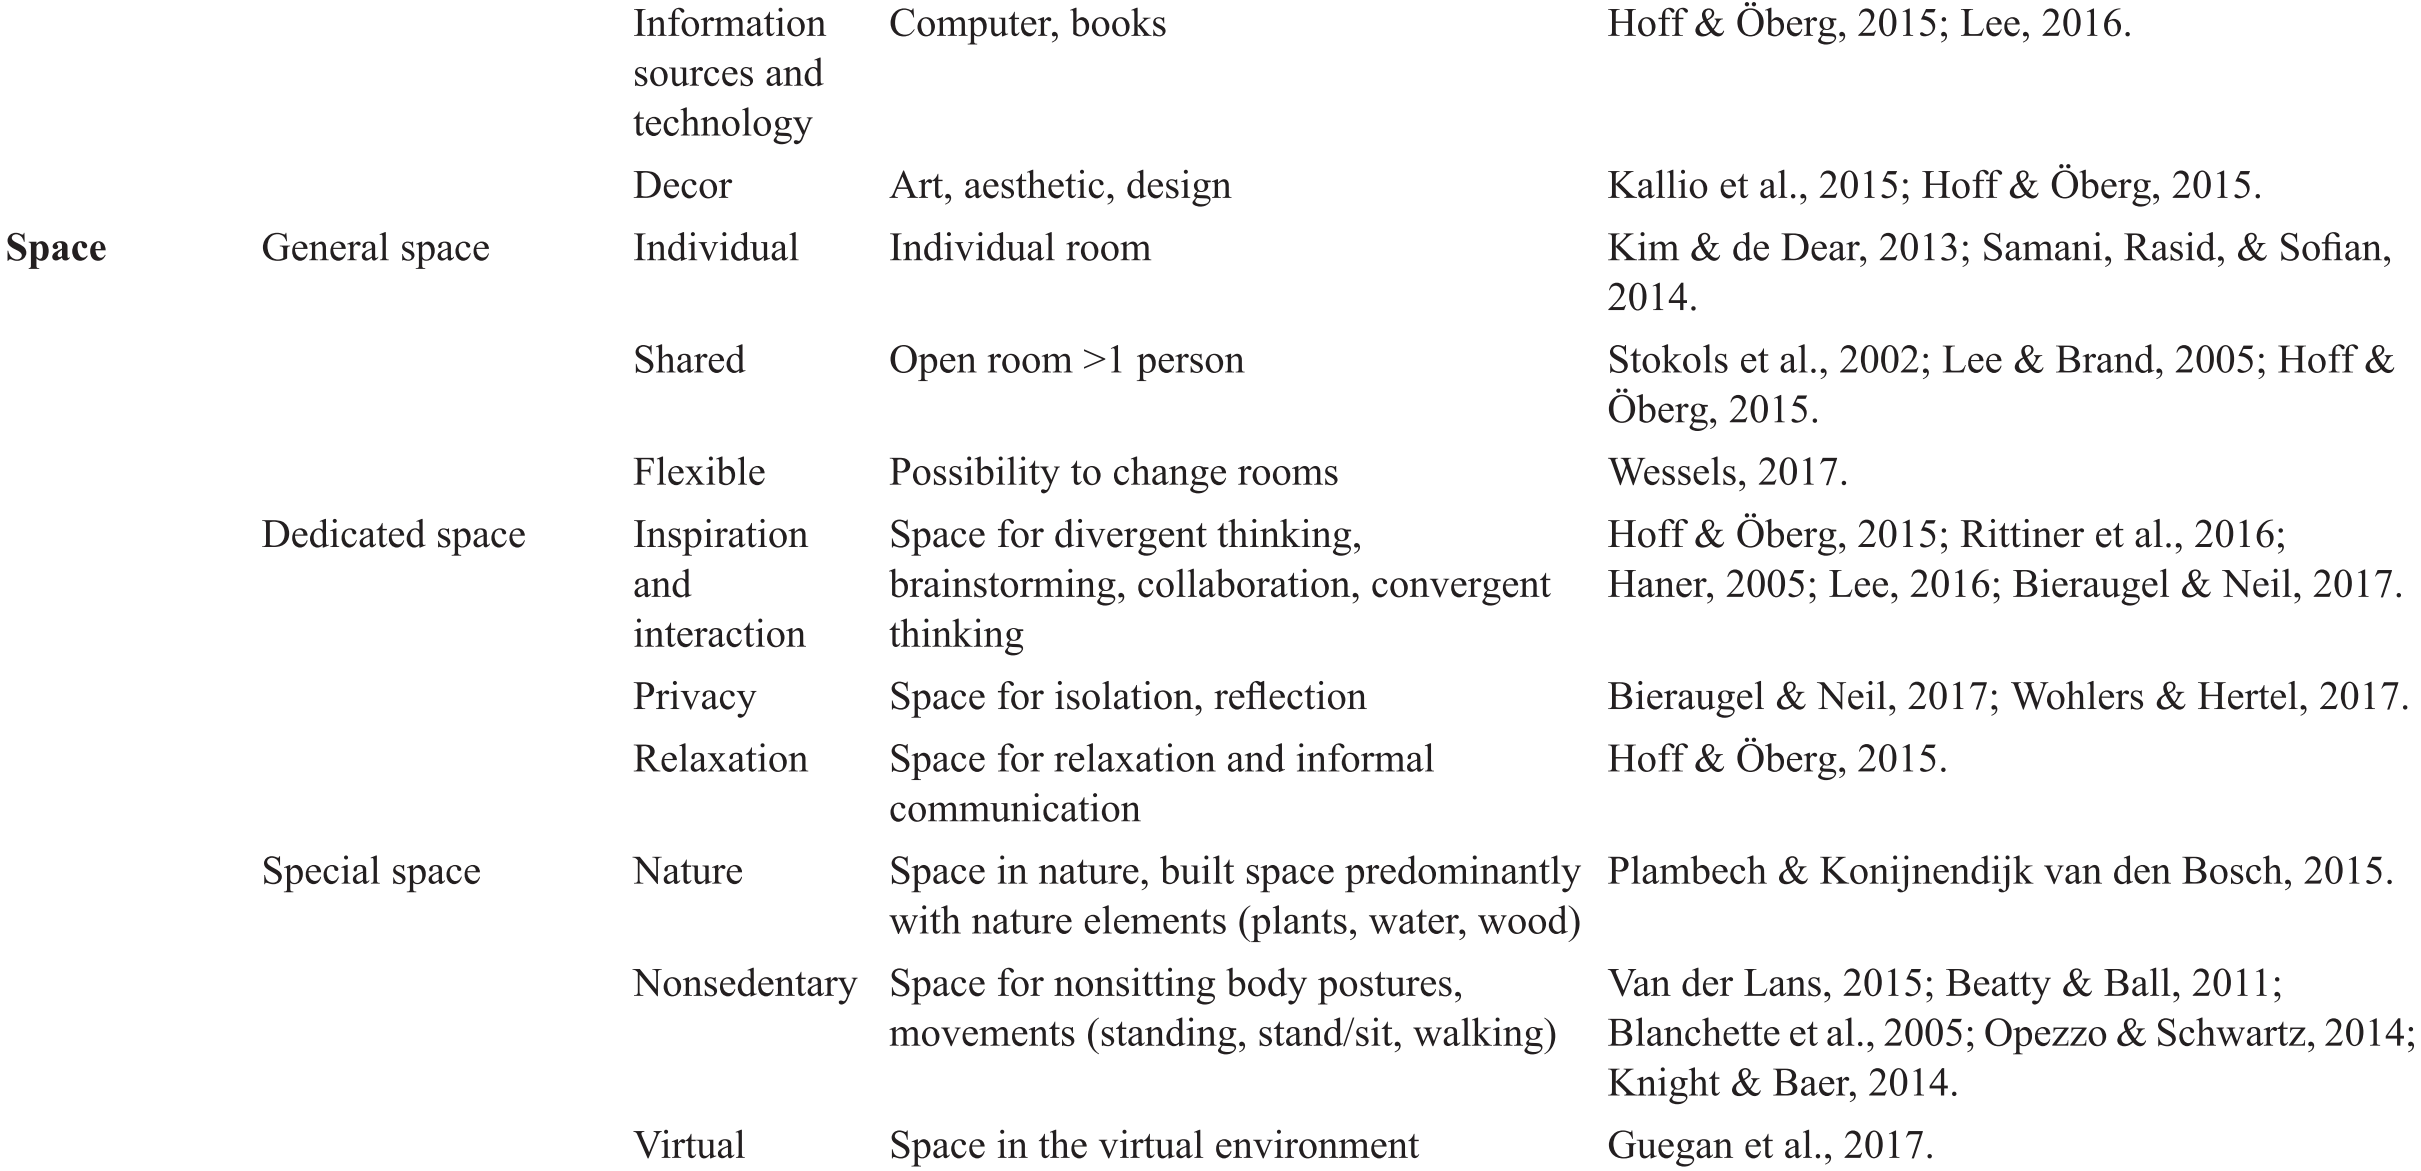 Differential Bases for Creativity (Part III) - The Cambridge